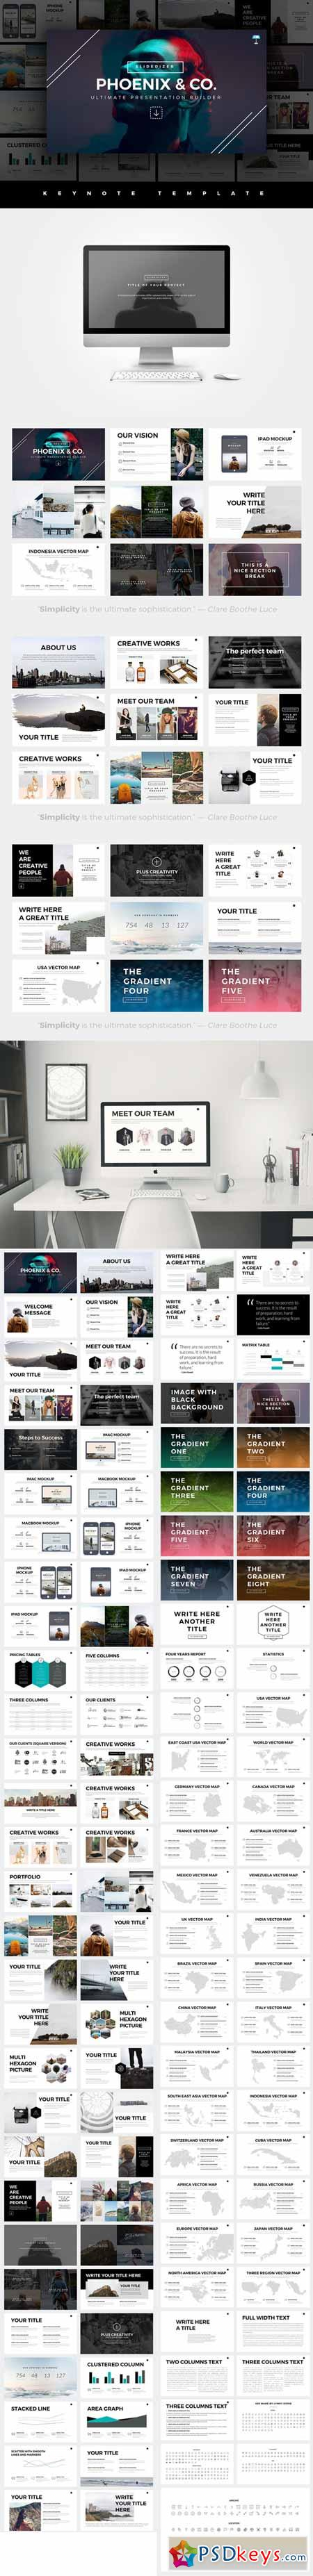 phoenix minimal keynote template 522250 free download photoshop vector stock image via torrent. Black Bedroom Furniture Sets. Home Design Ideas